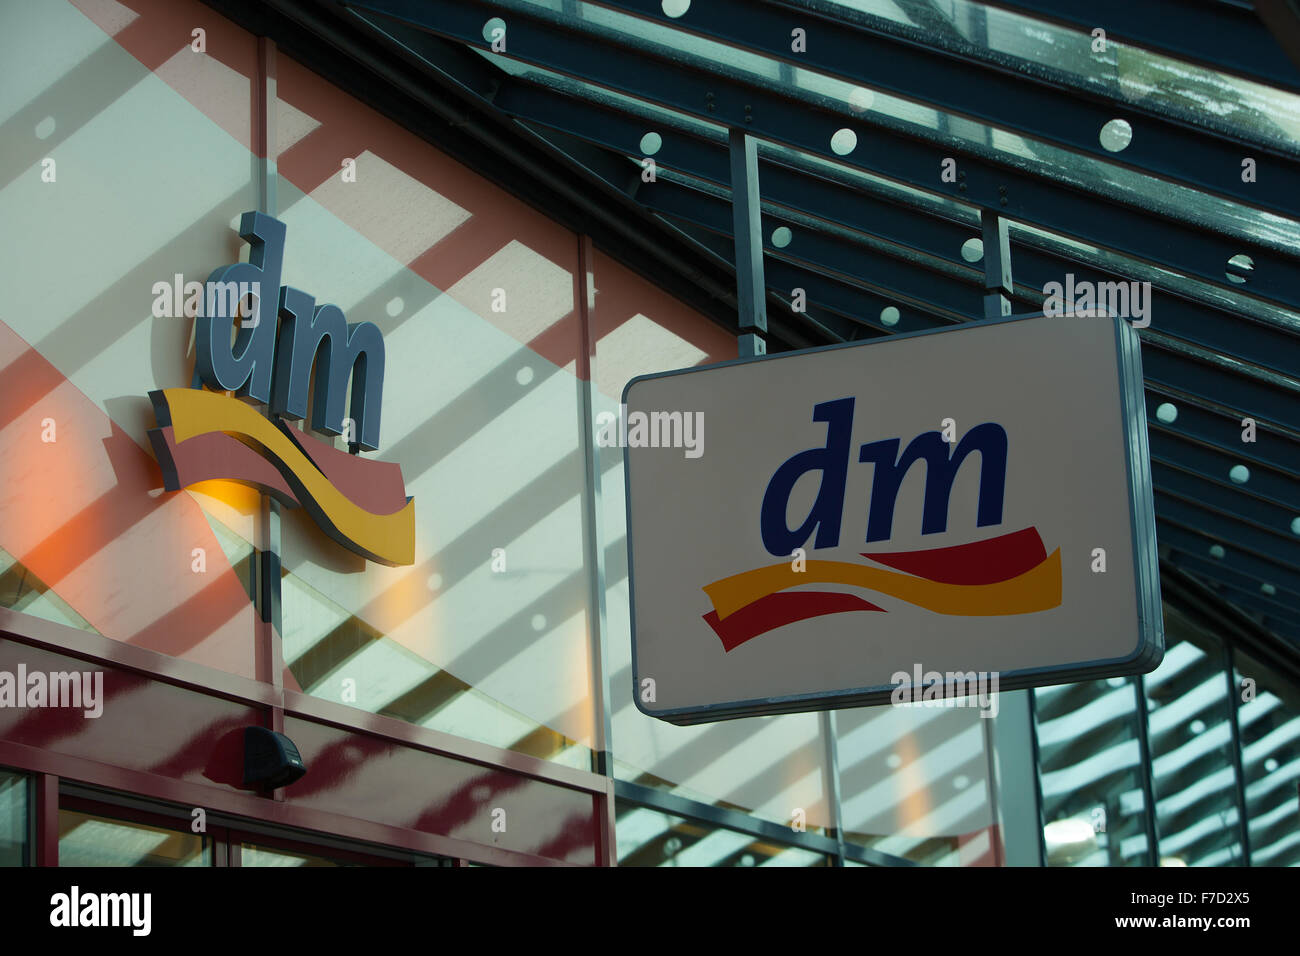 DM drogerie markt sign in Prague - Stock Image